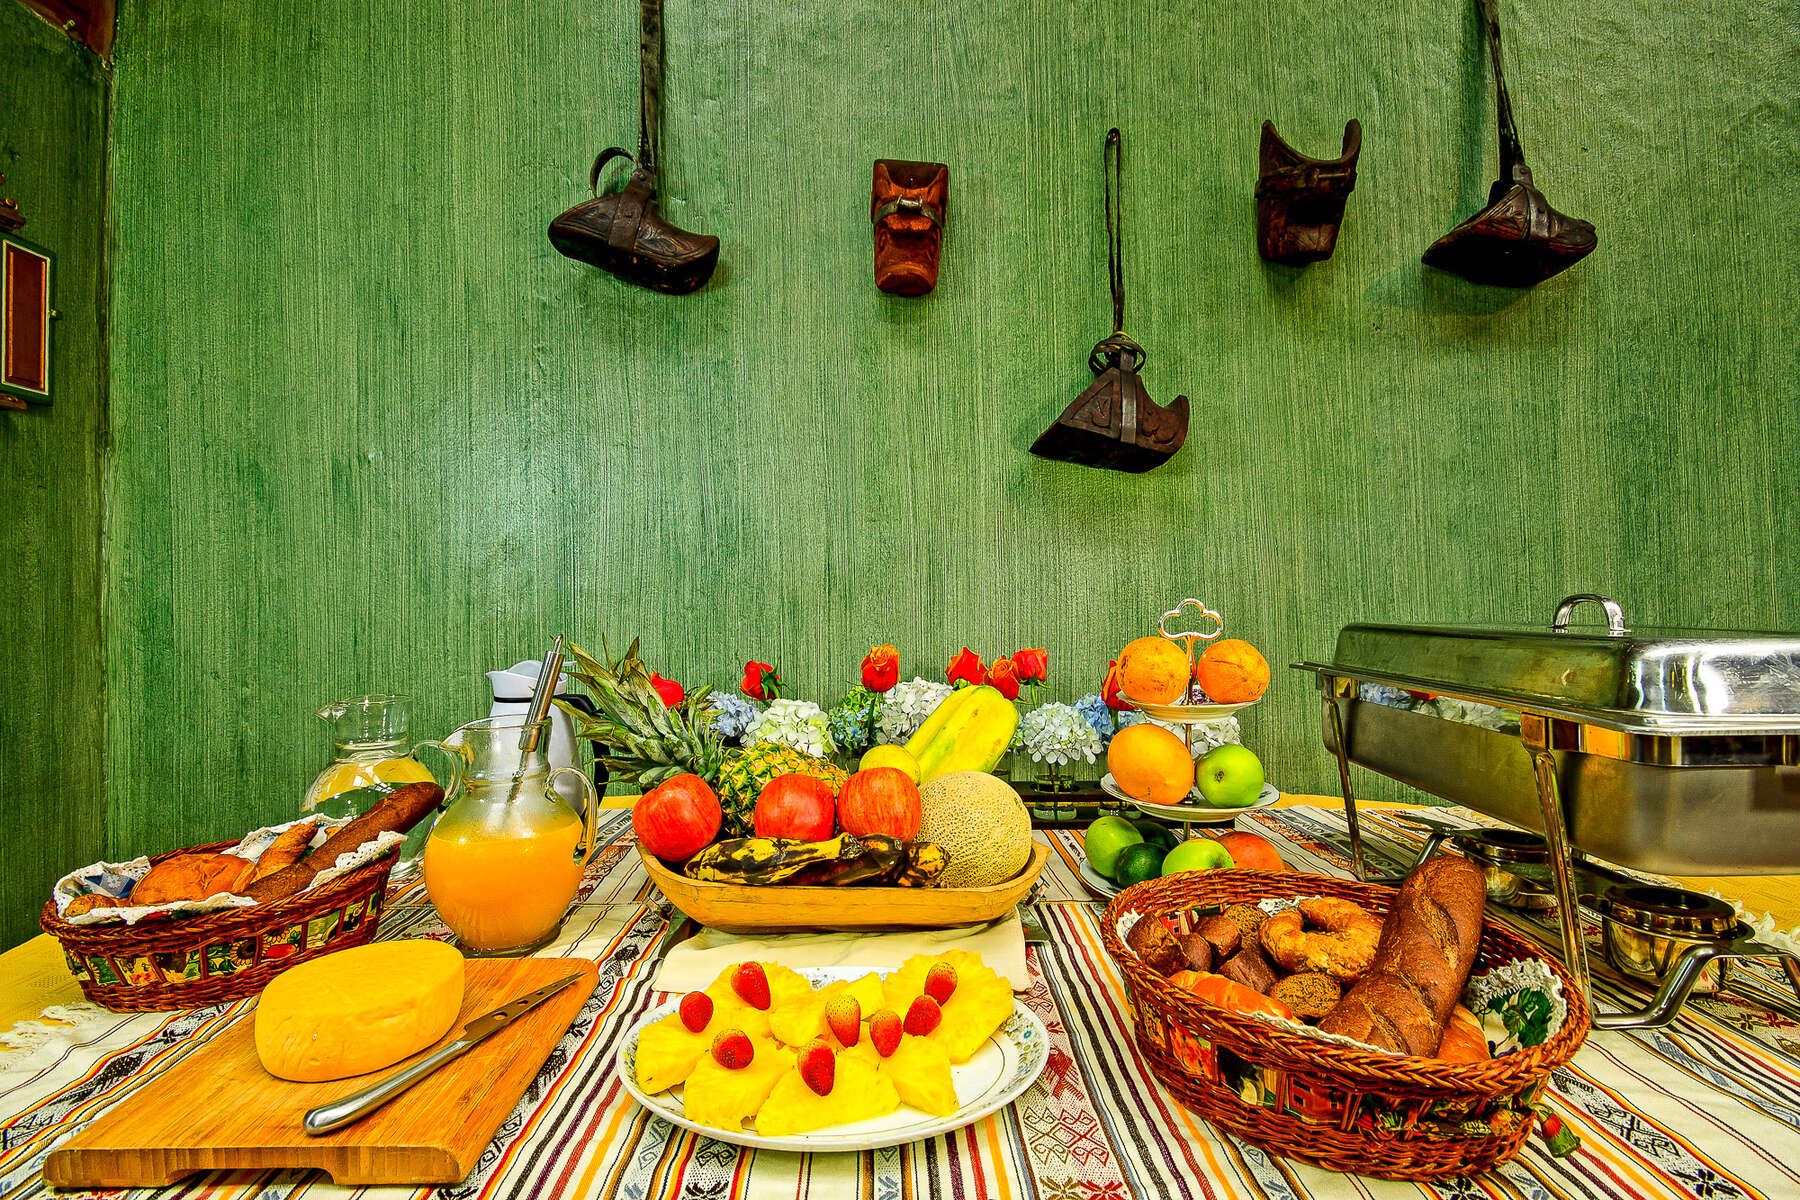 Meal set out for riders on a trail riding holiday in Ecuador